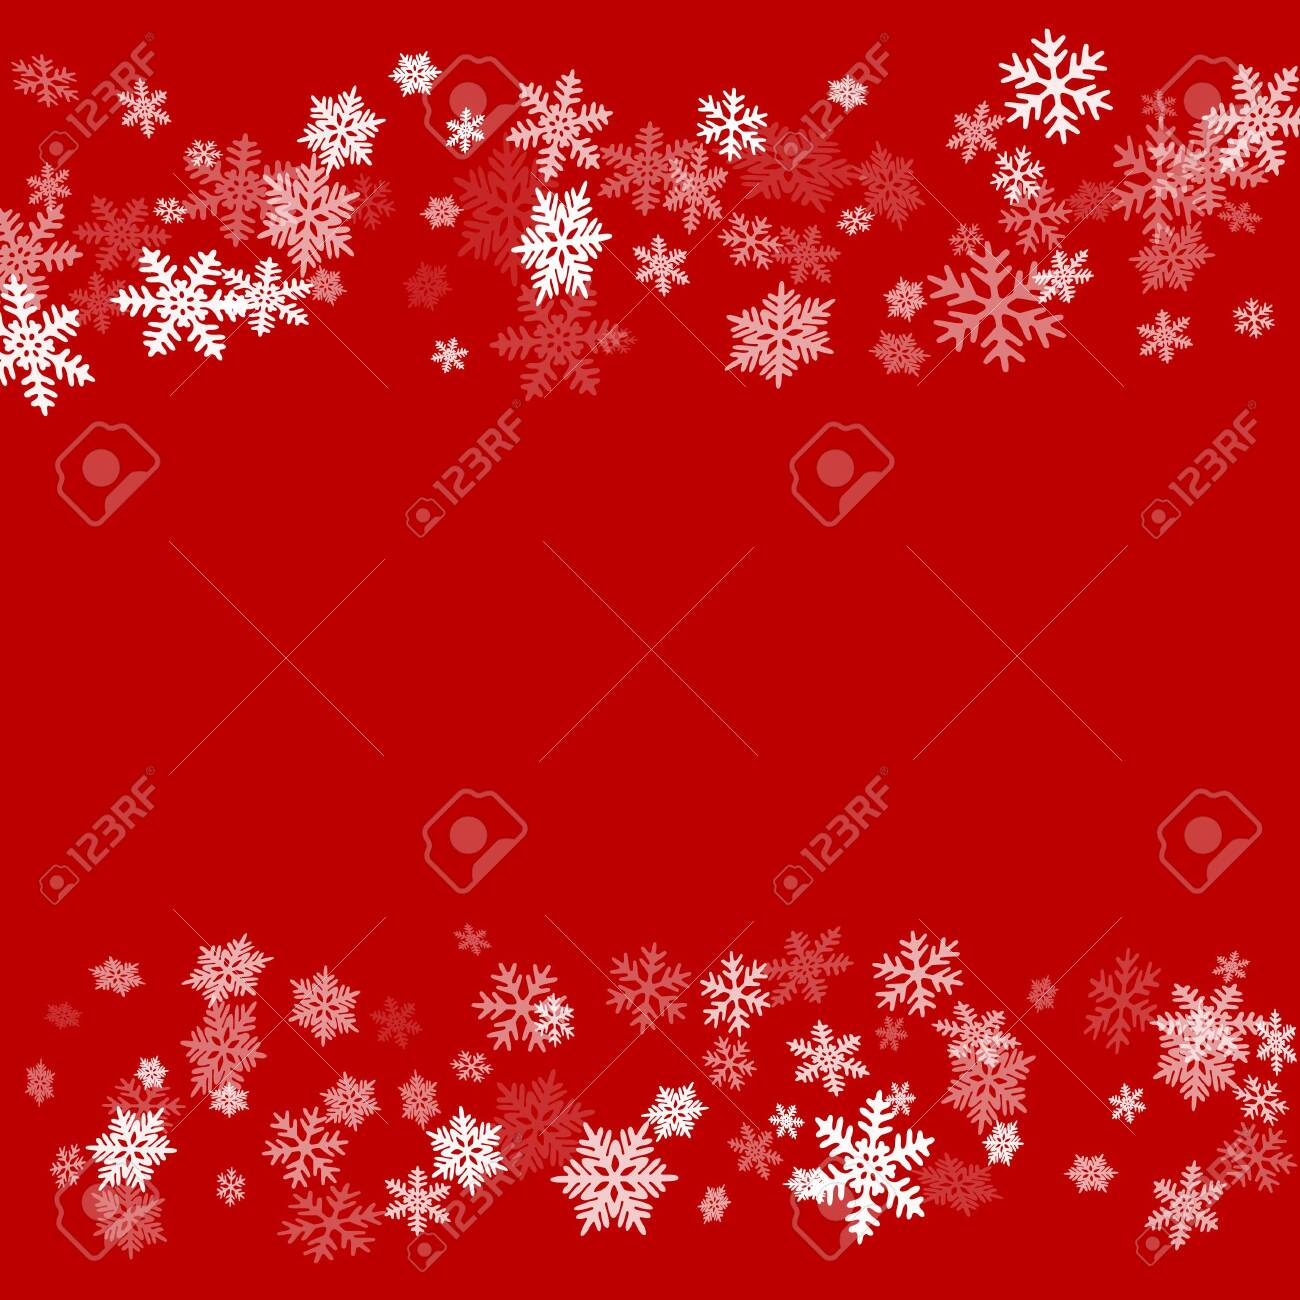 Winter snowflakes border simple vector background. Many snowflakes flying border design, holiday banner with flakes confetti scatter frame, snow elements. Cold season winter symbols. - 128567808